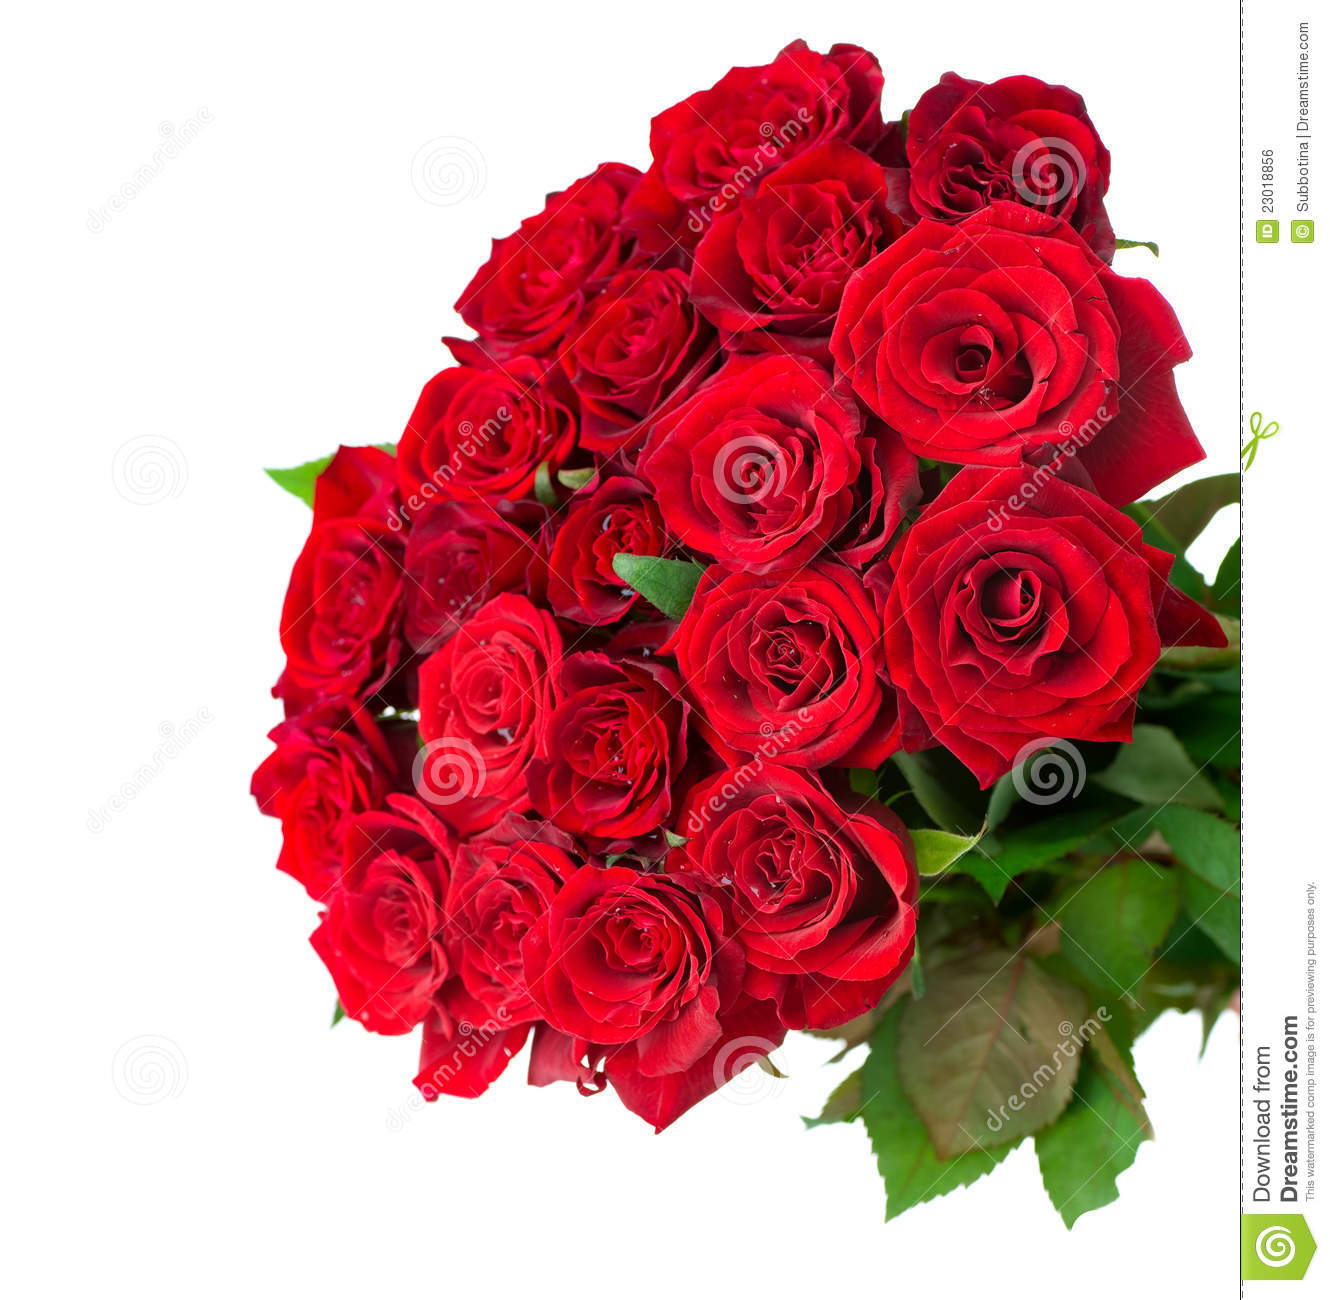 Rose flower rose flower bouquets flowers bouquet stock photos images u0026amp pictures u2013 202238 images izmirmasajfo